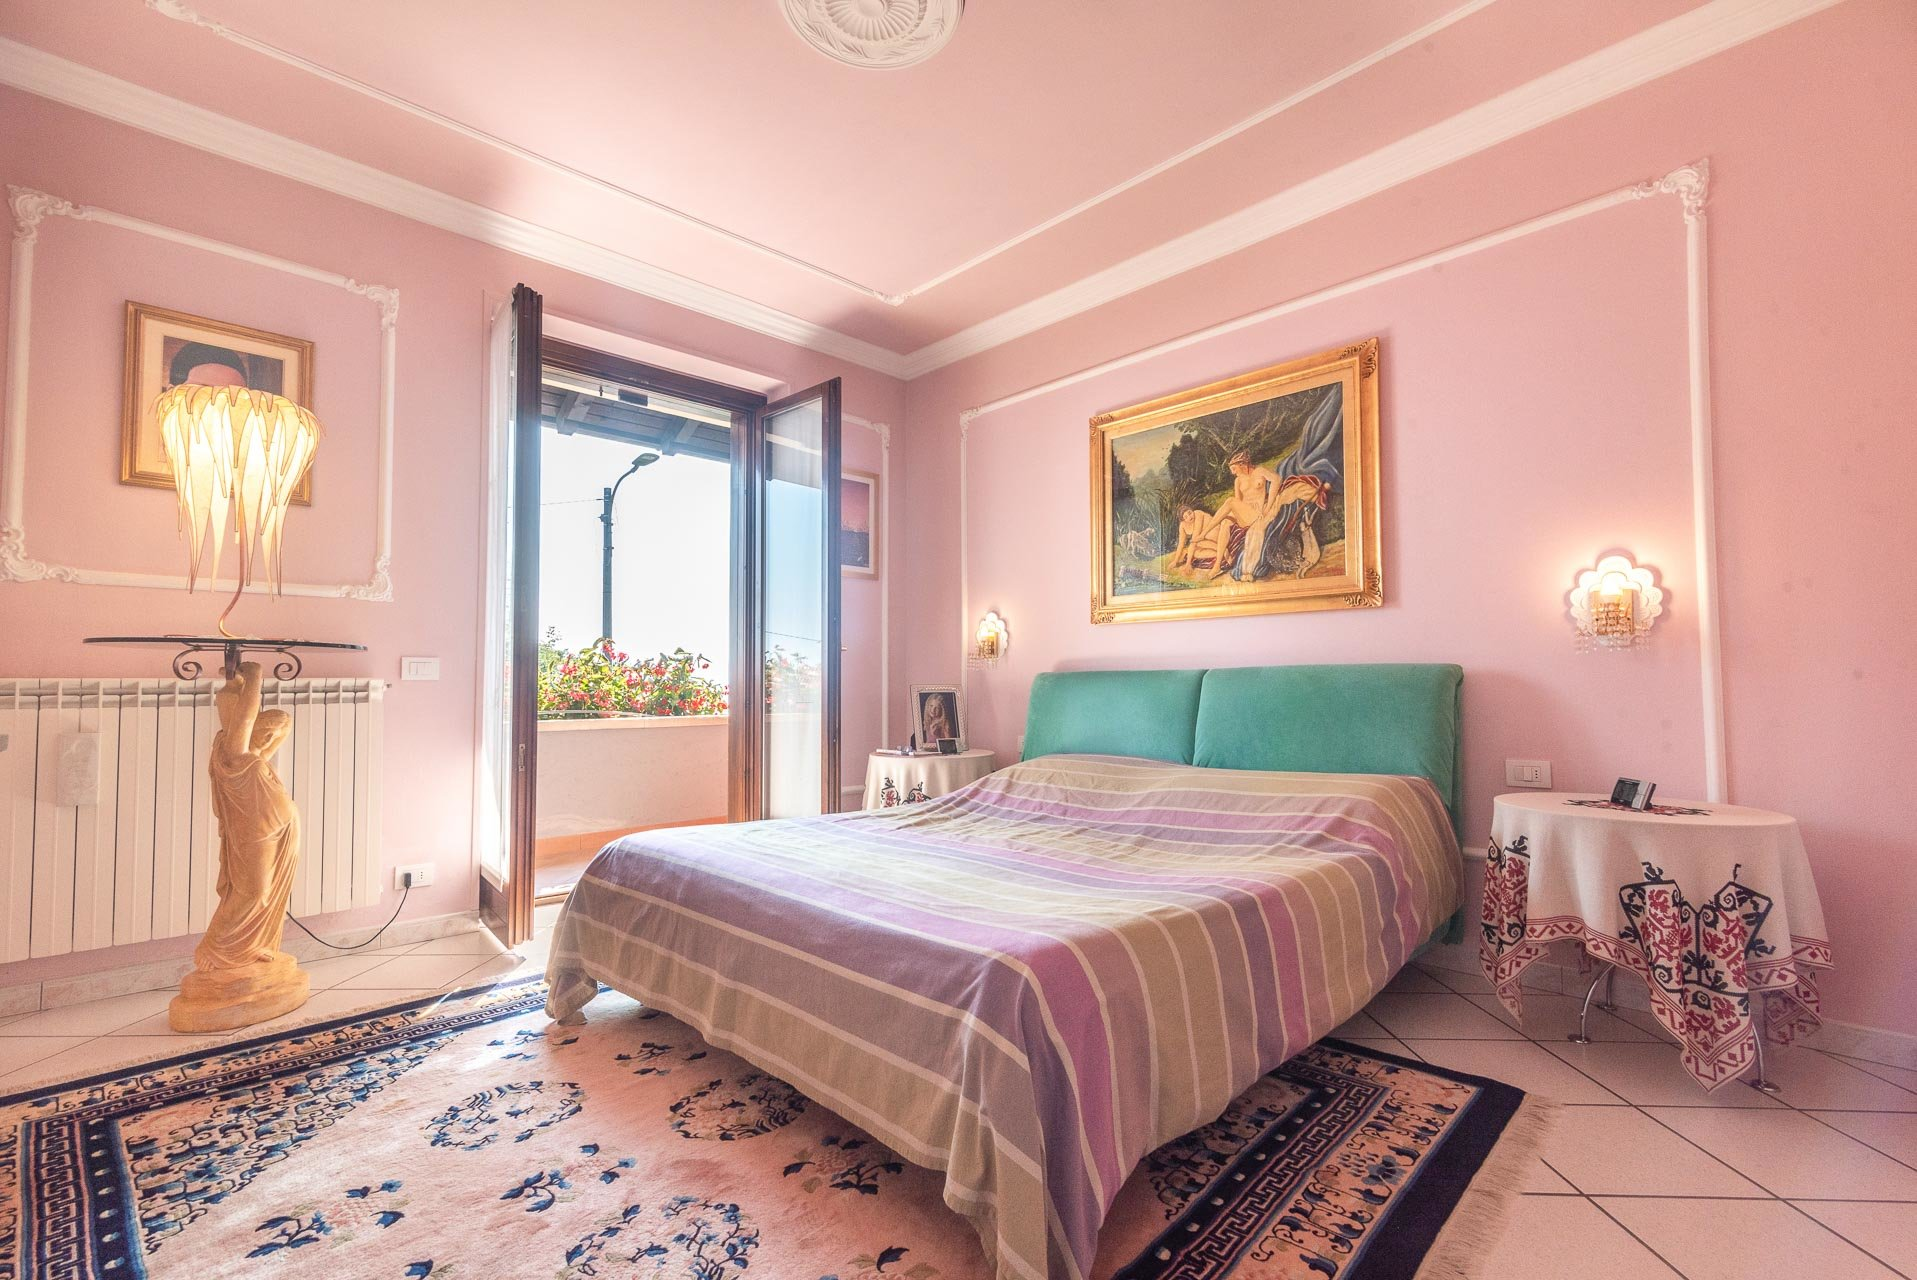 Villa for sale in Bee, with wonderful lake view - bedroom